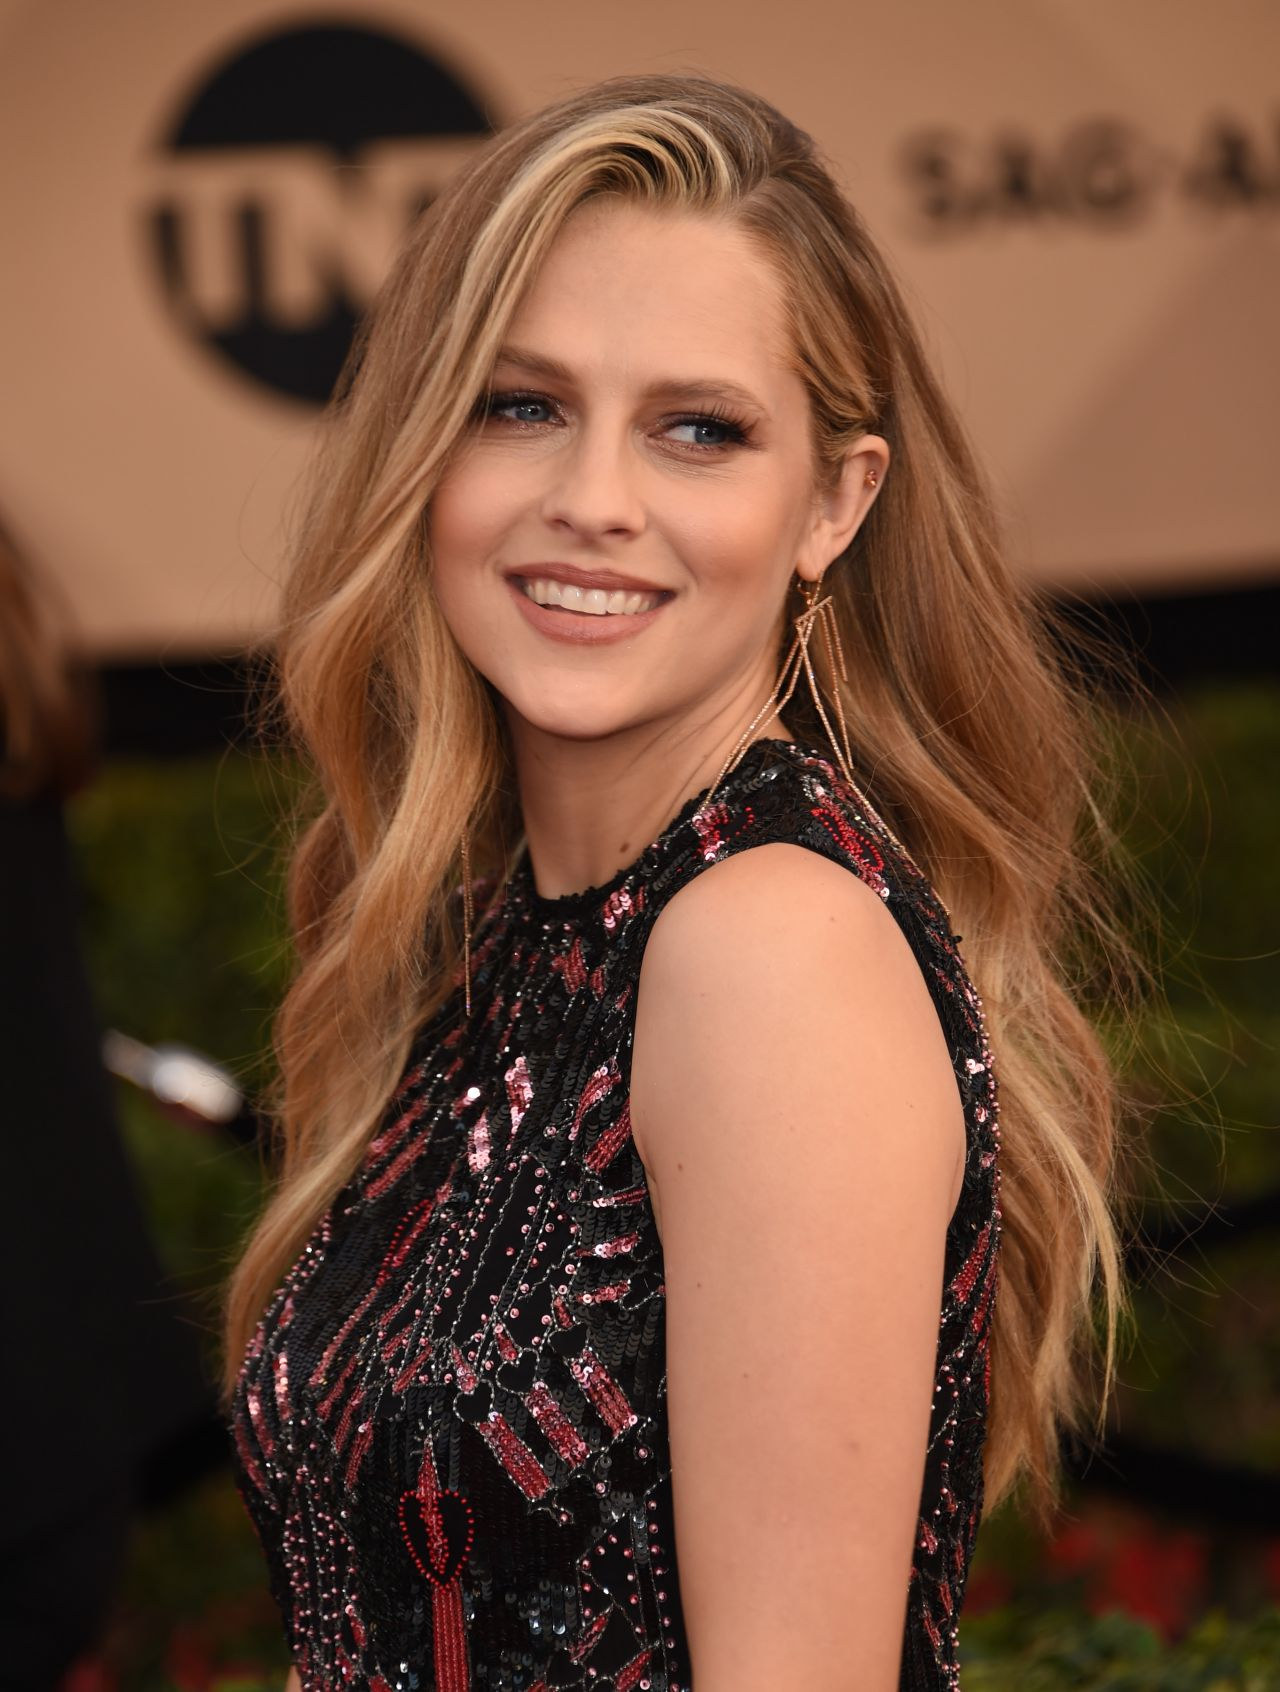 http://celebmafia.com/wp-content/uploads/2017/01/teresa-palmer-sag-awards-in-los-angeles-1-29-2017-6.jpg